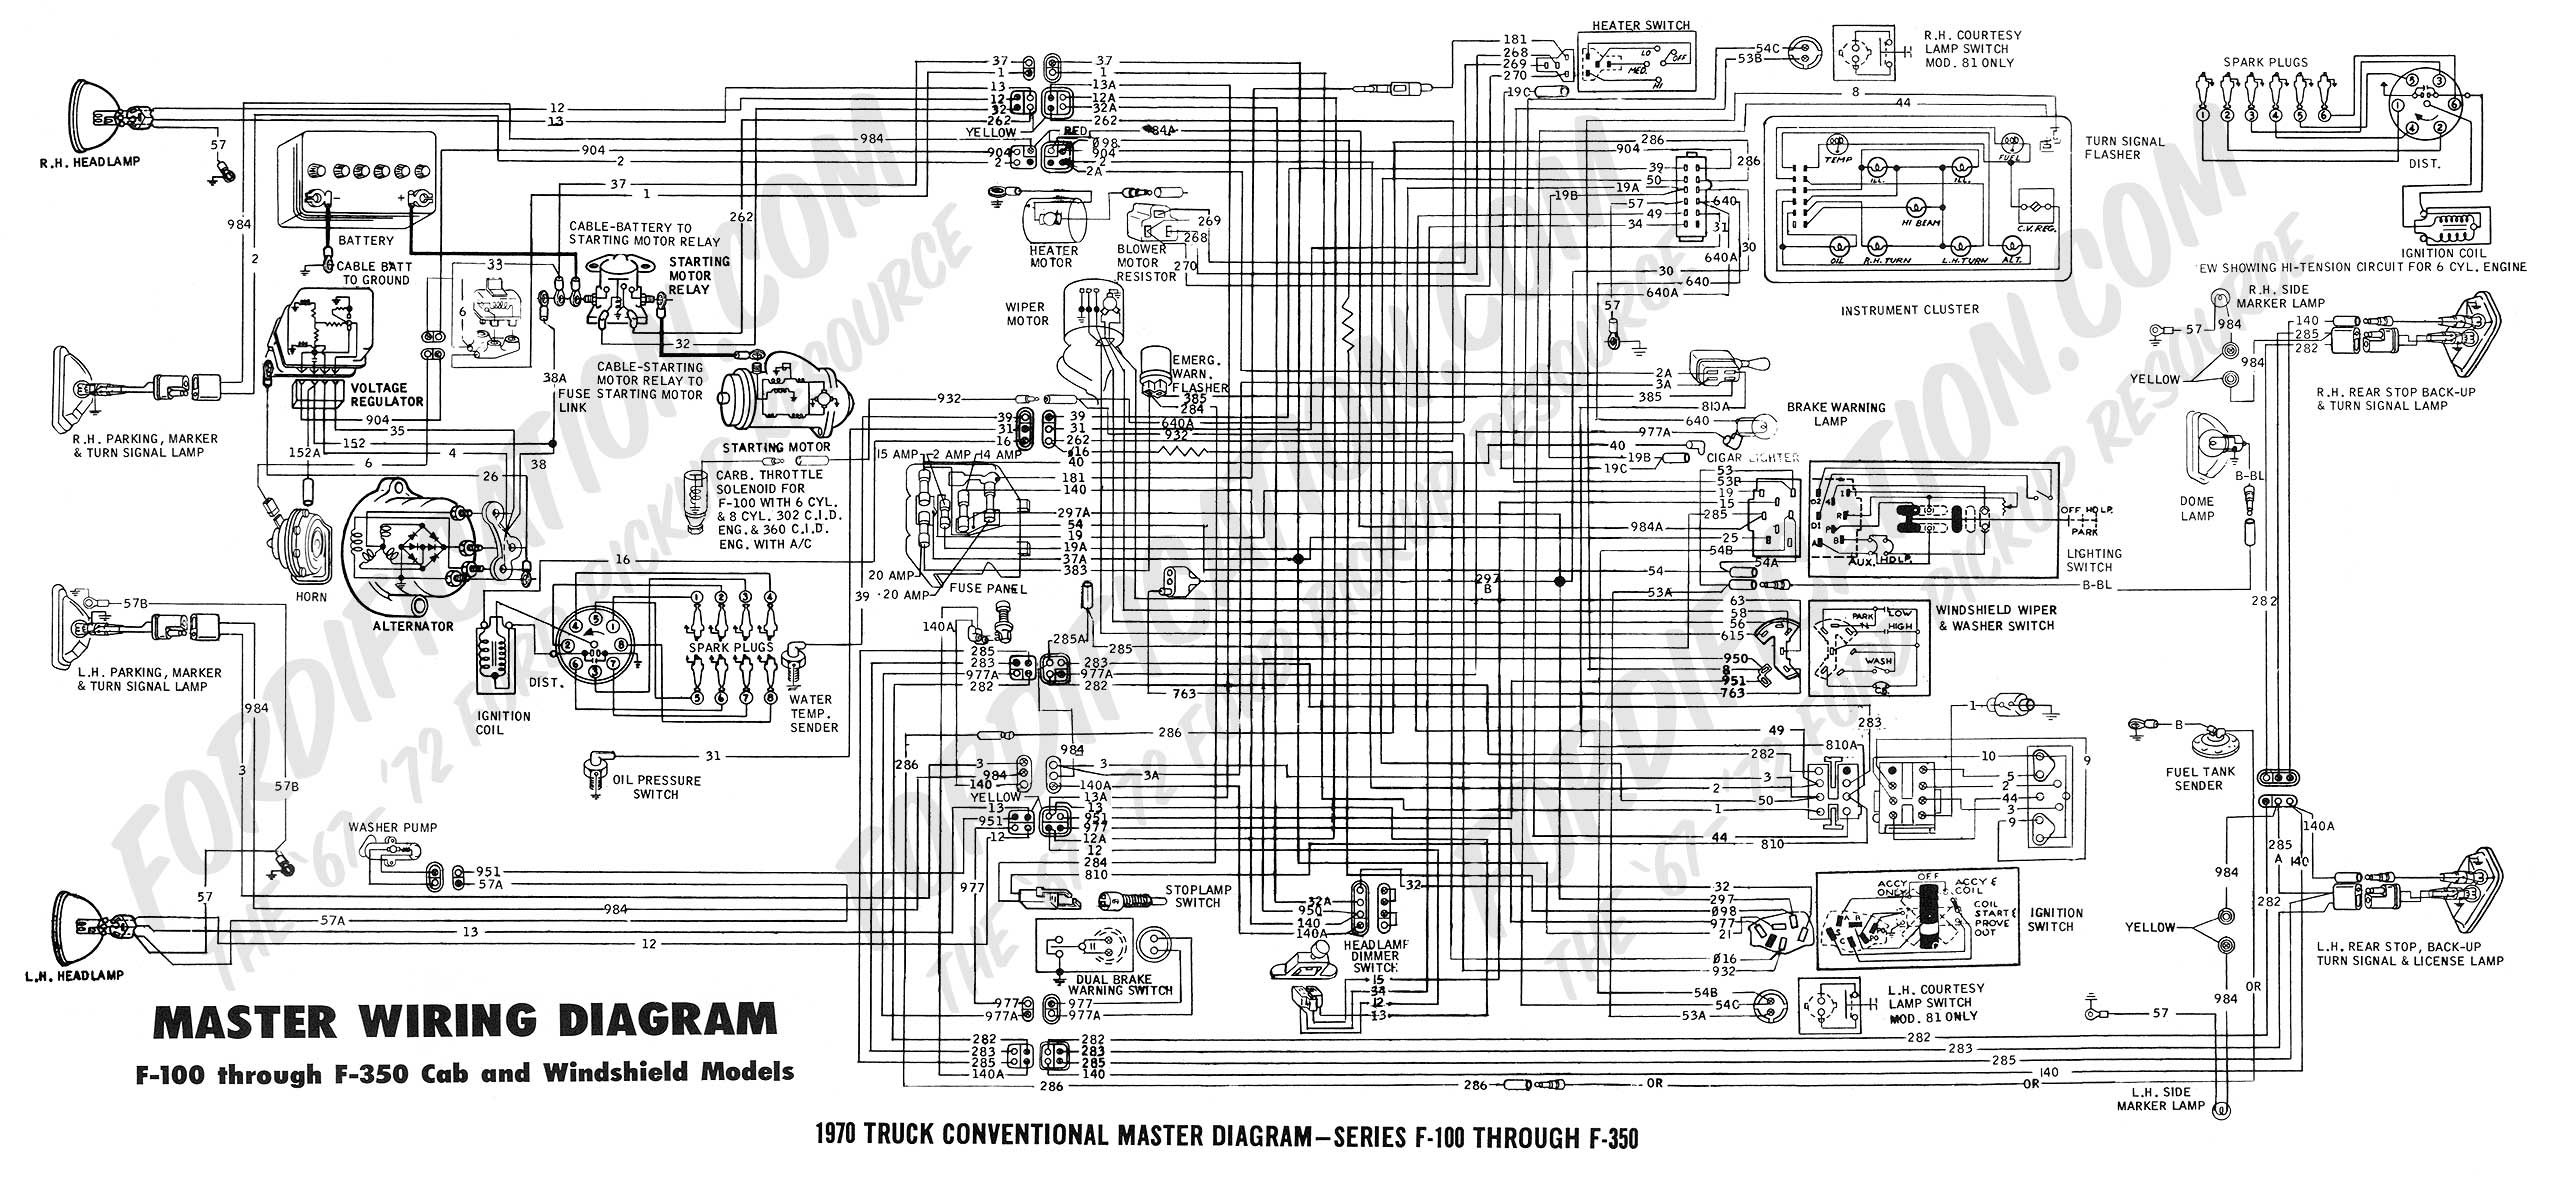 78 Ford F250 Wiring Diagram Manual Guide 99 Mustang F150 Library Rh 86 Gebaeudereinigung Pach De 1978 Ignition